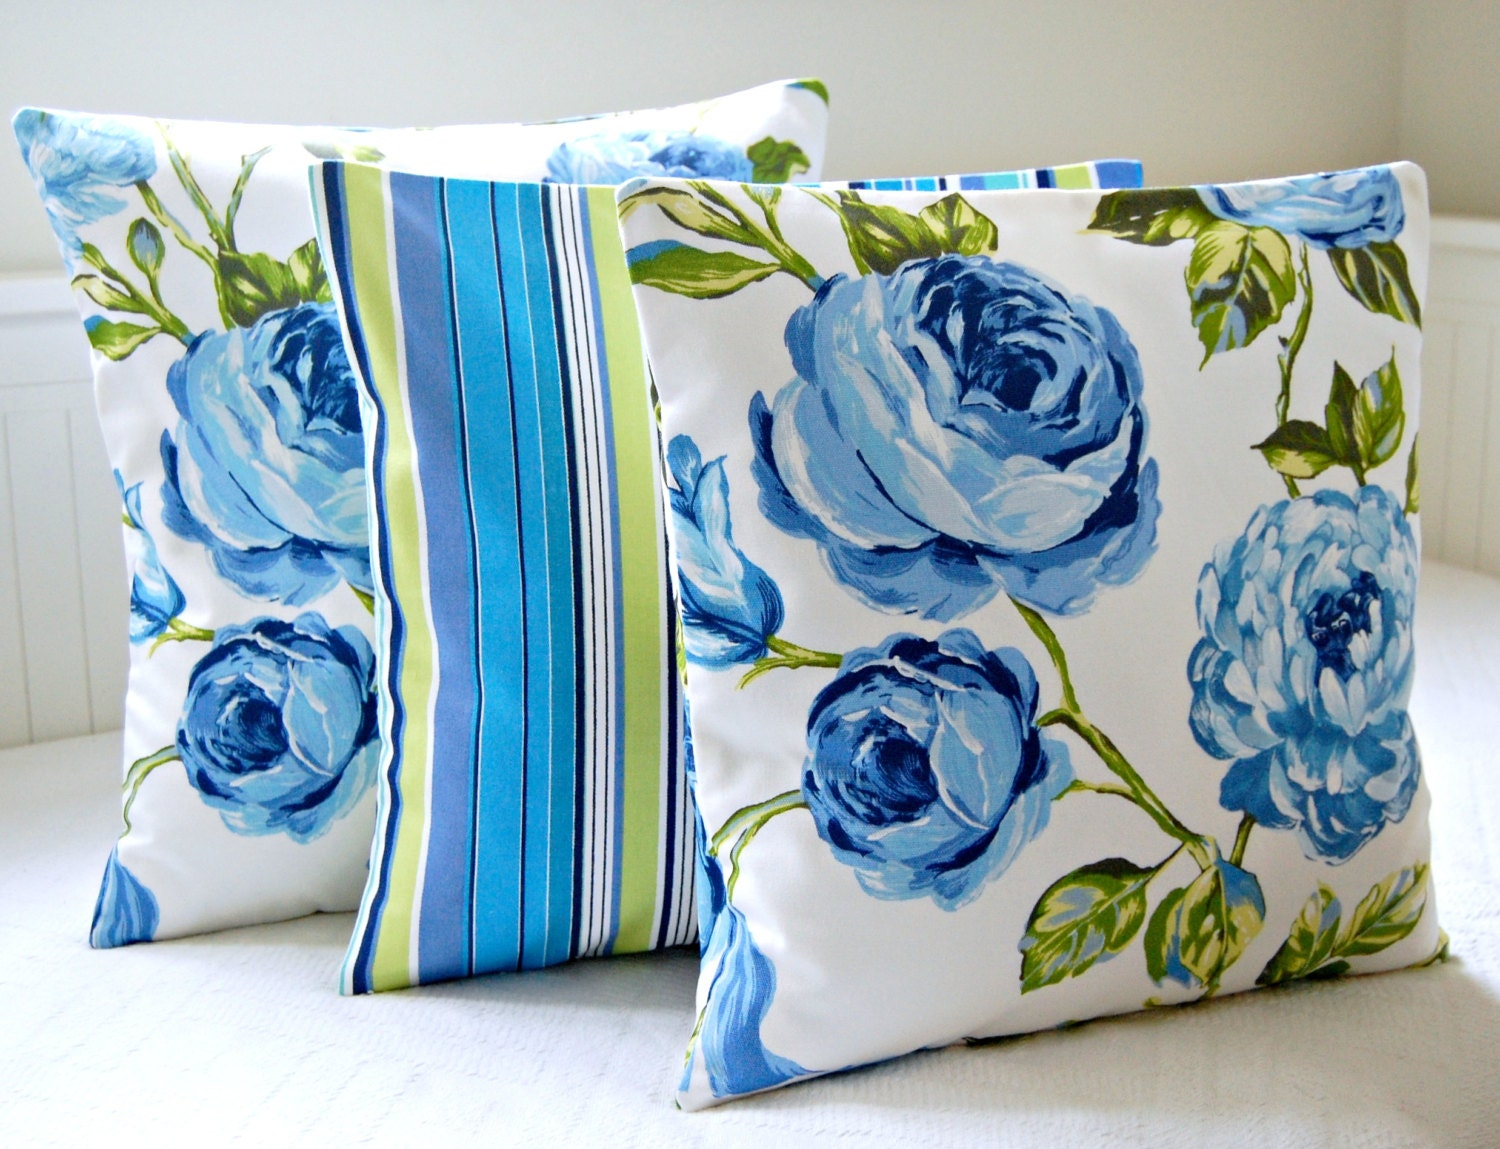 Large Blue Decorative Pillows : 16 inch decorative pillow cover large blue roses green leaves